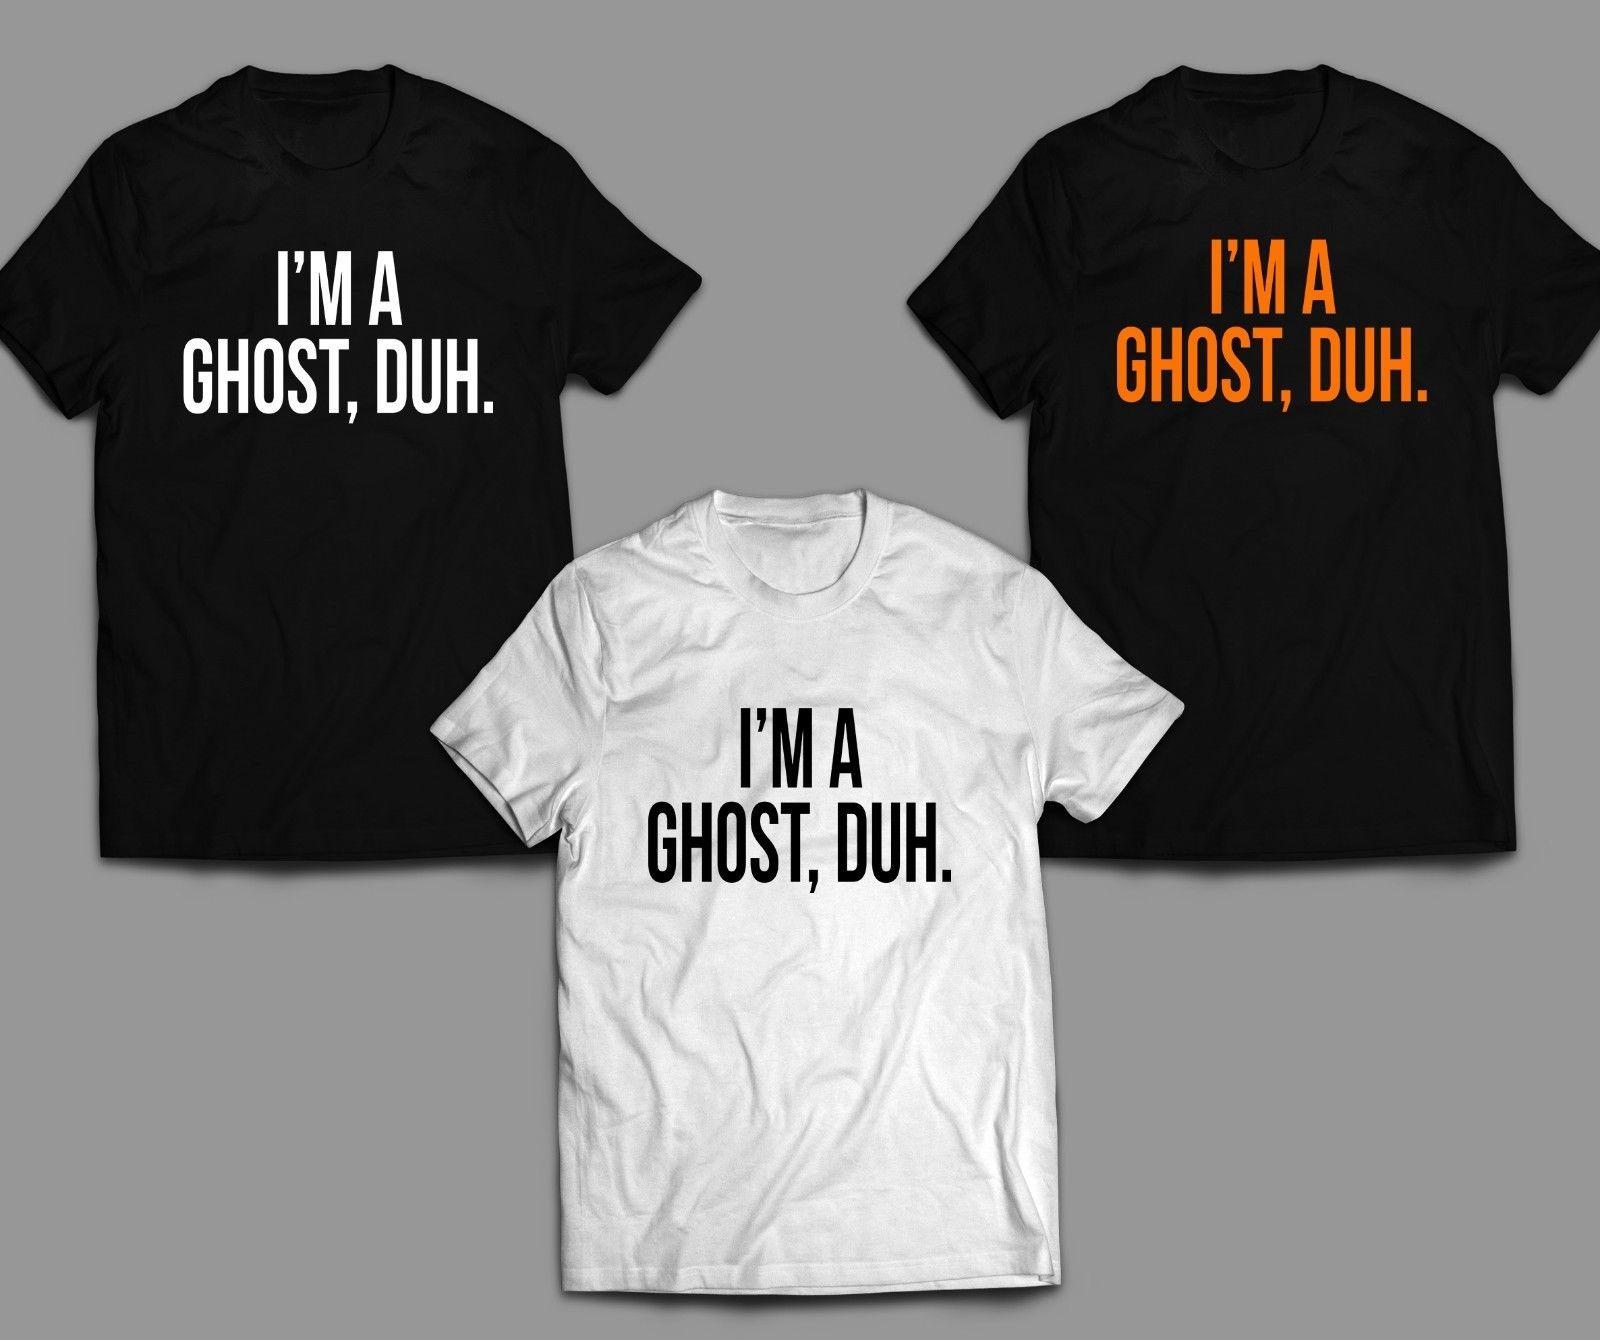 77200da82 I'm a ghost, duh. Halloween T-shirt Halloween costume Ghost Spooky Dress up  2018 Funny free shipping Unisex Casual tee gift top